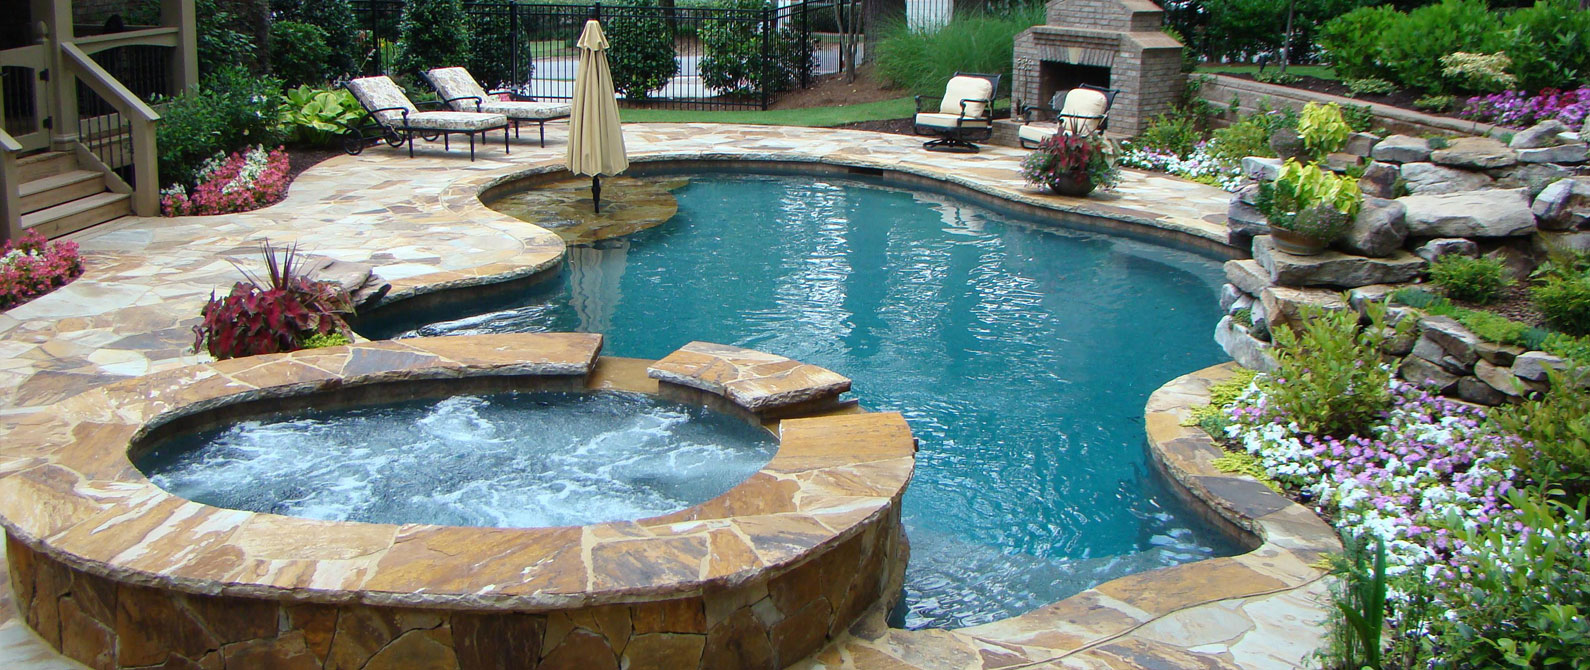 High quality pools and spas atlanta outdoor designs inc for Pool design inc